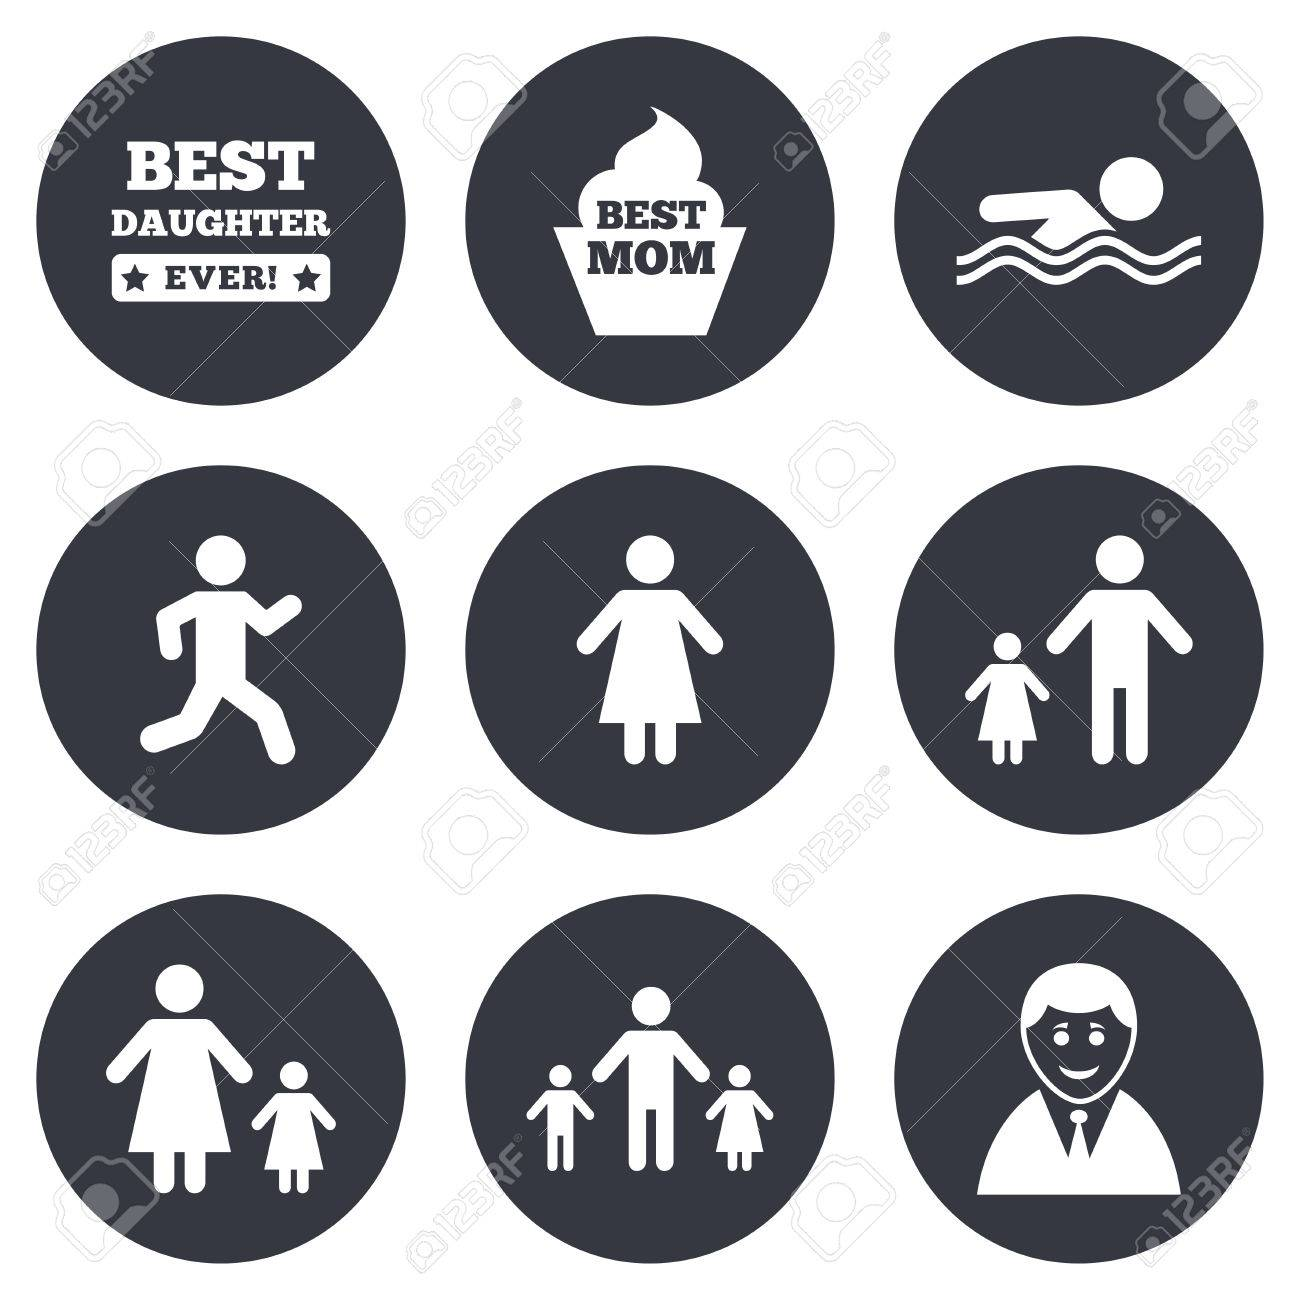 Symbols for father daughter the best daughter of 2018 father daughter norwegian symbol buycottarizona